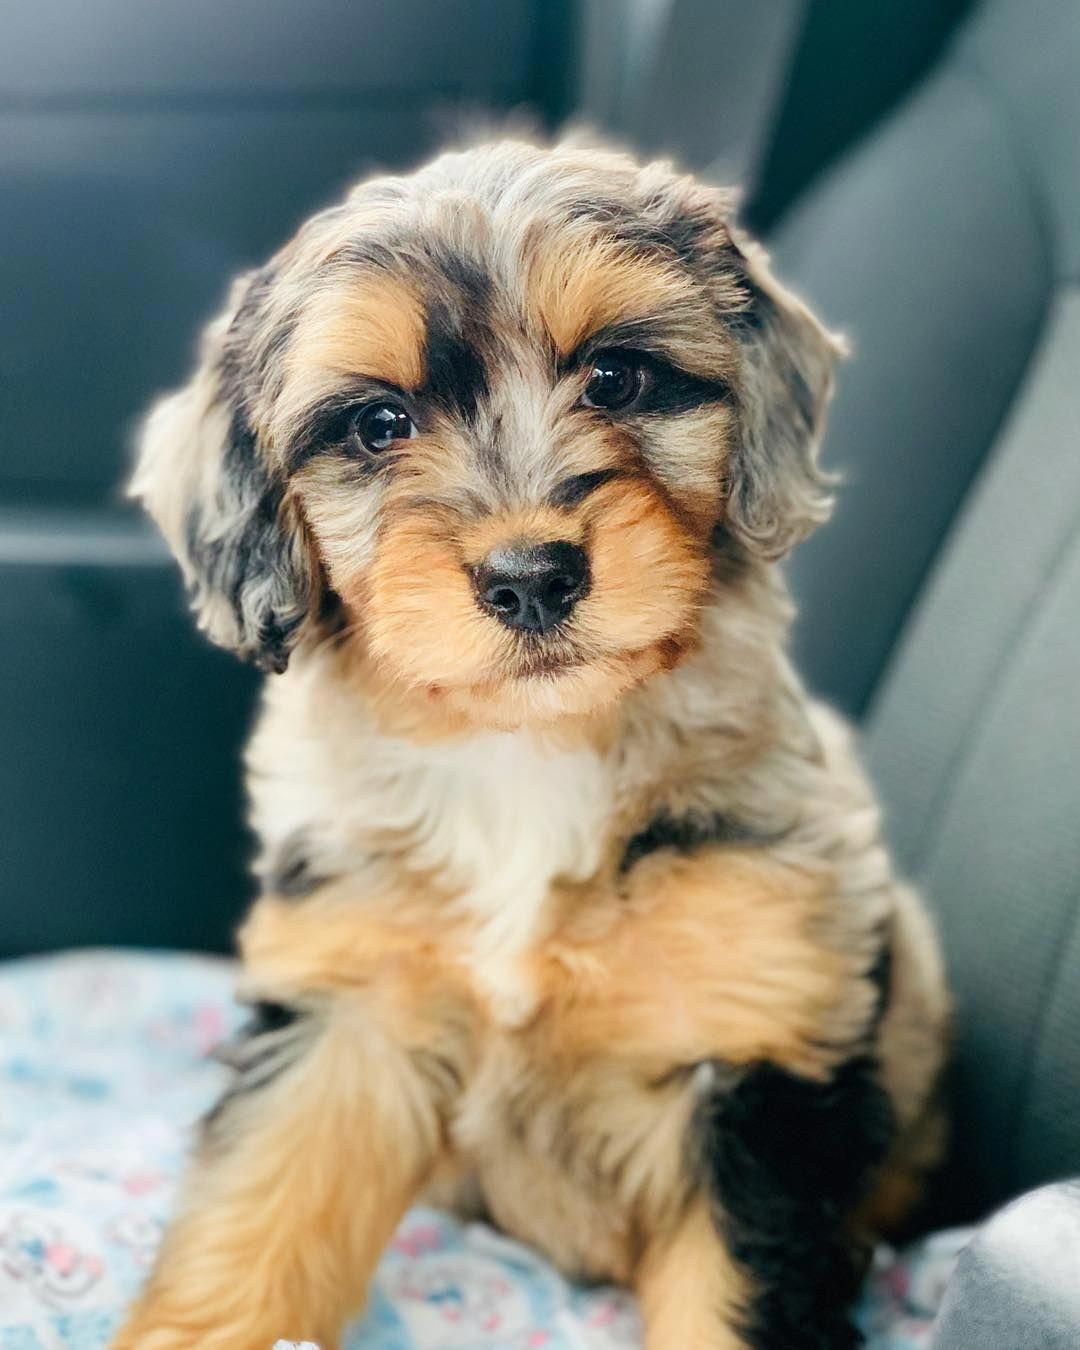 Aussiedoodles Super Smart Hybrid Can Almost Read Your Mind Aussiedoodles Aussiedoodlepuppies Cutepuppies Dogs Do In 2020 Puppies Aussiedoodle Poodle Mix Puppies